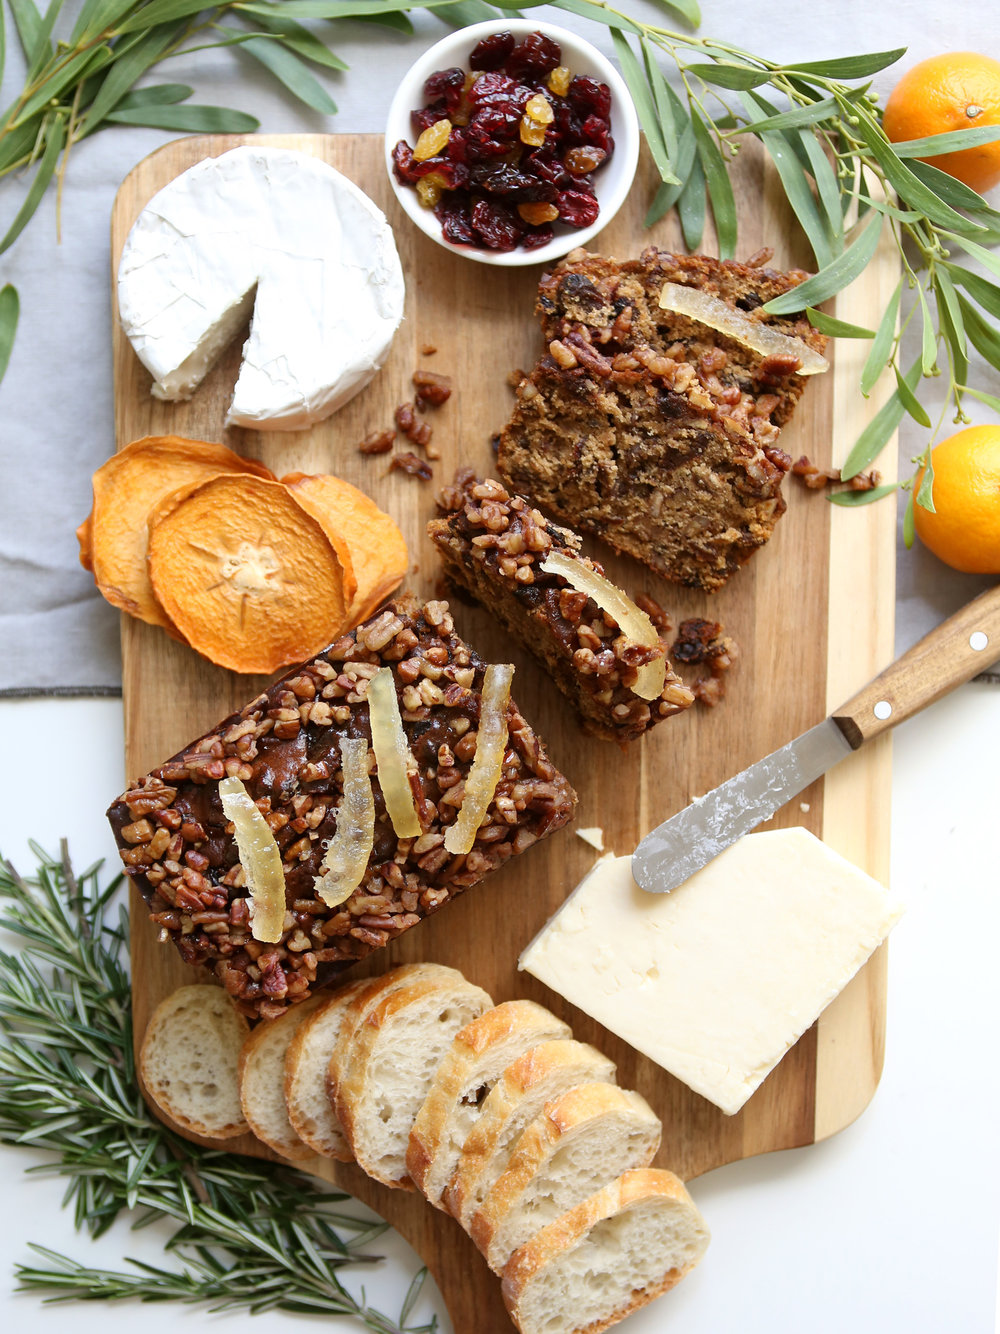 HotBreadKitchen-Holiday-Fruitcake-CheesetrayTop-web.jpg